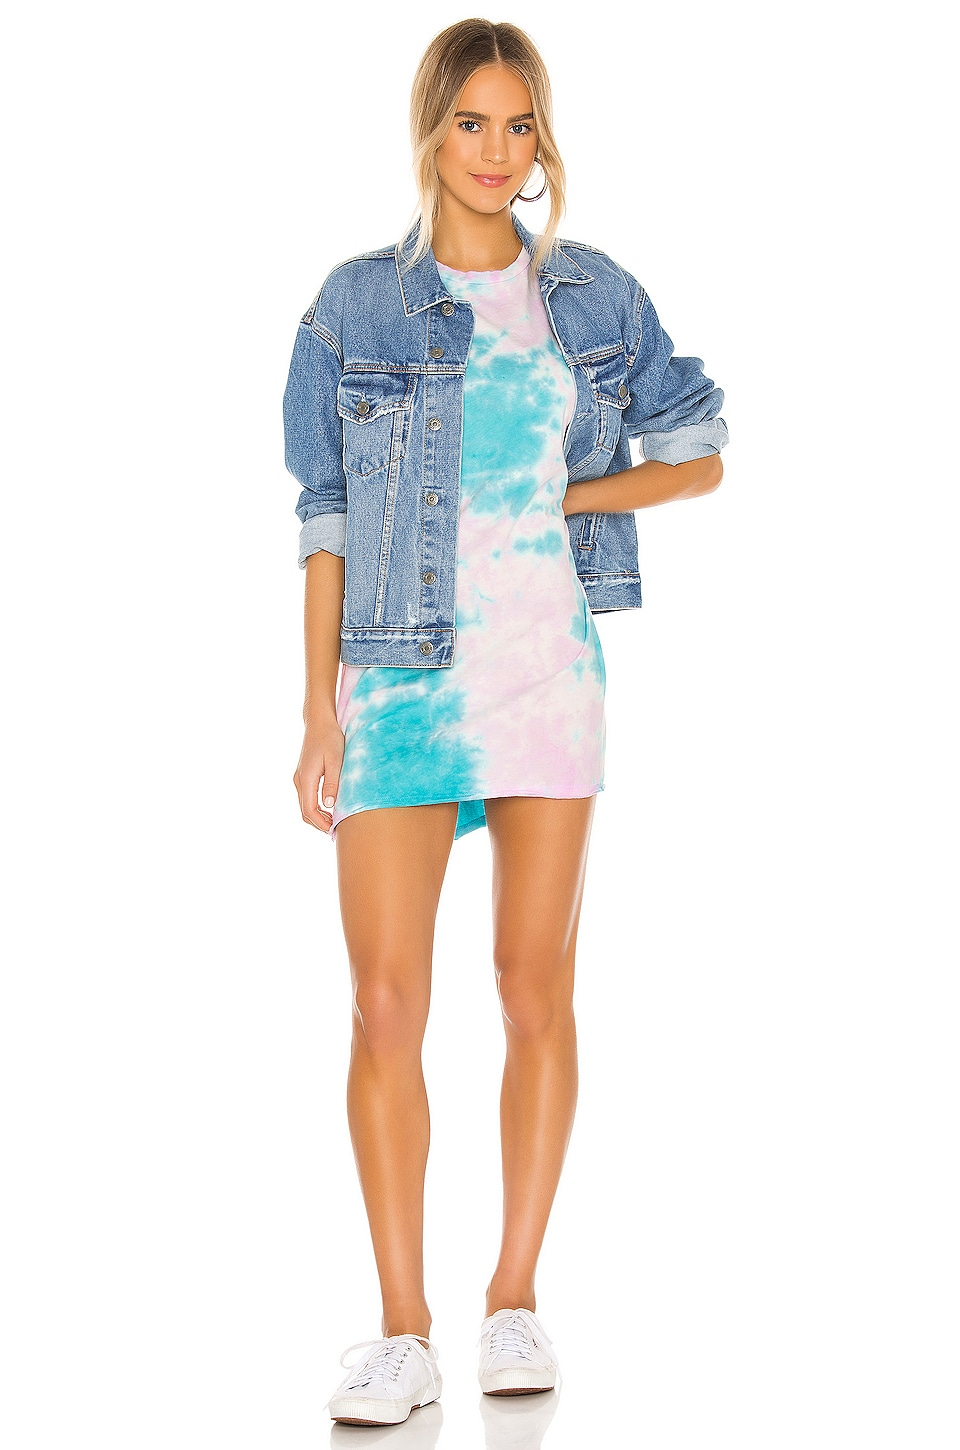 Burman Oversized T-Shirt Dress, view 4, click to view large image.